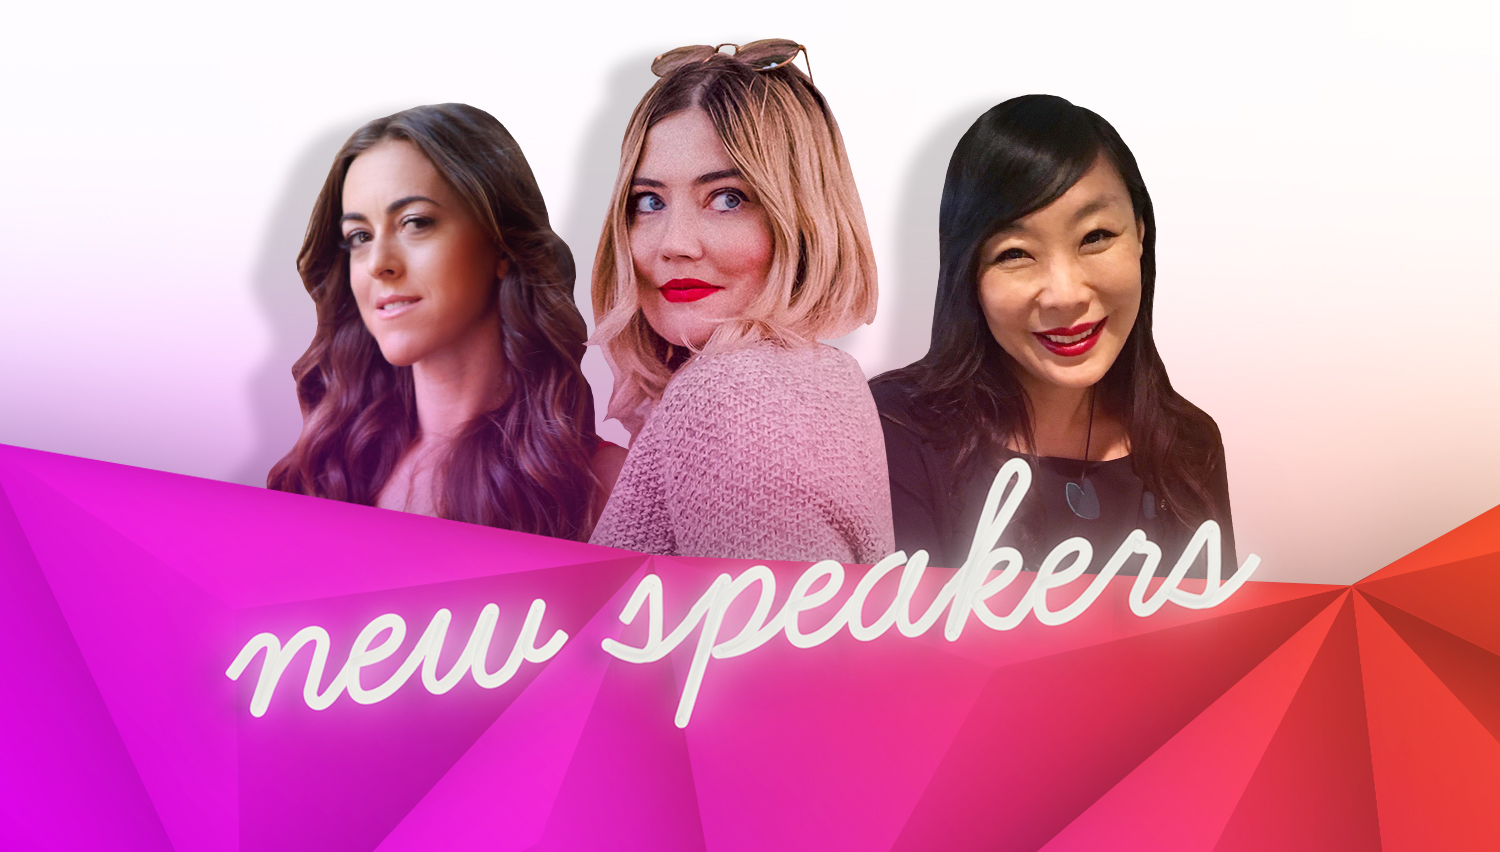 Meet Our Newest Speakers - Olya Hill, Aly Teich and Kristen Meinzer will take the stage at #BlogHer18 Creators Summit this summer.